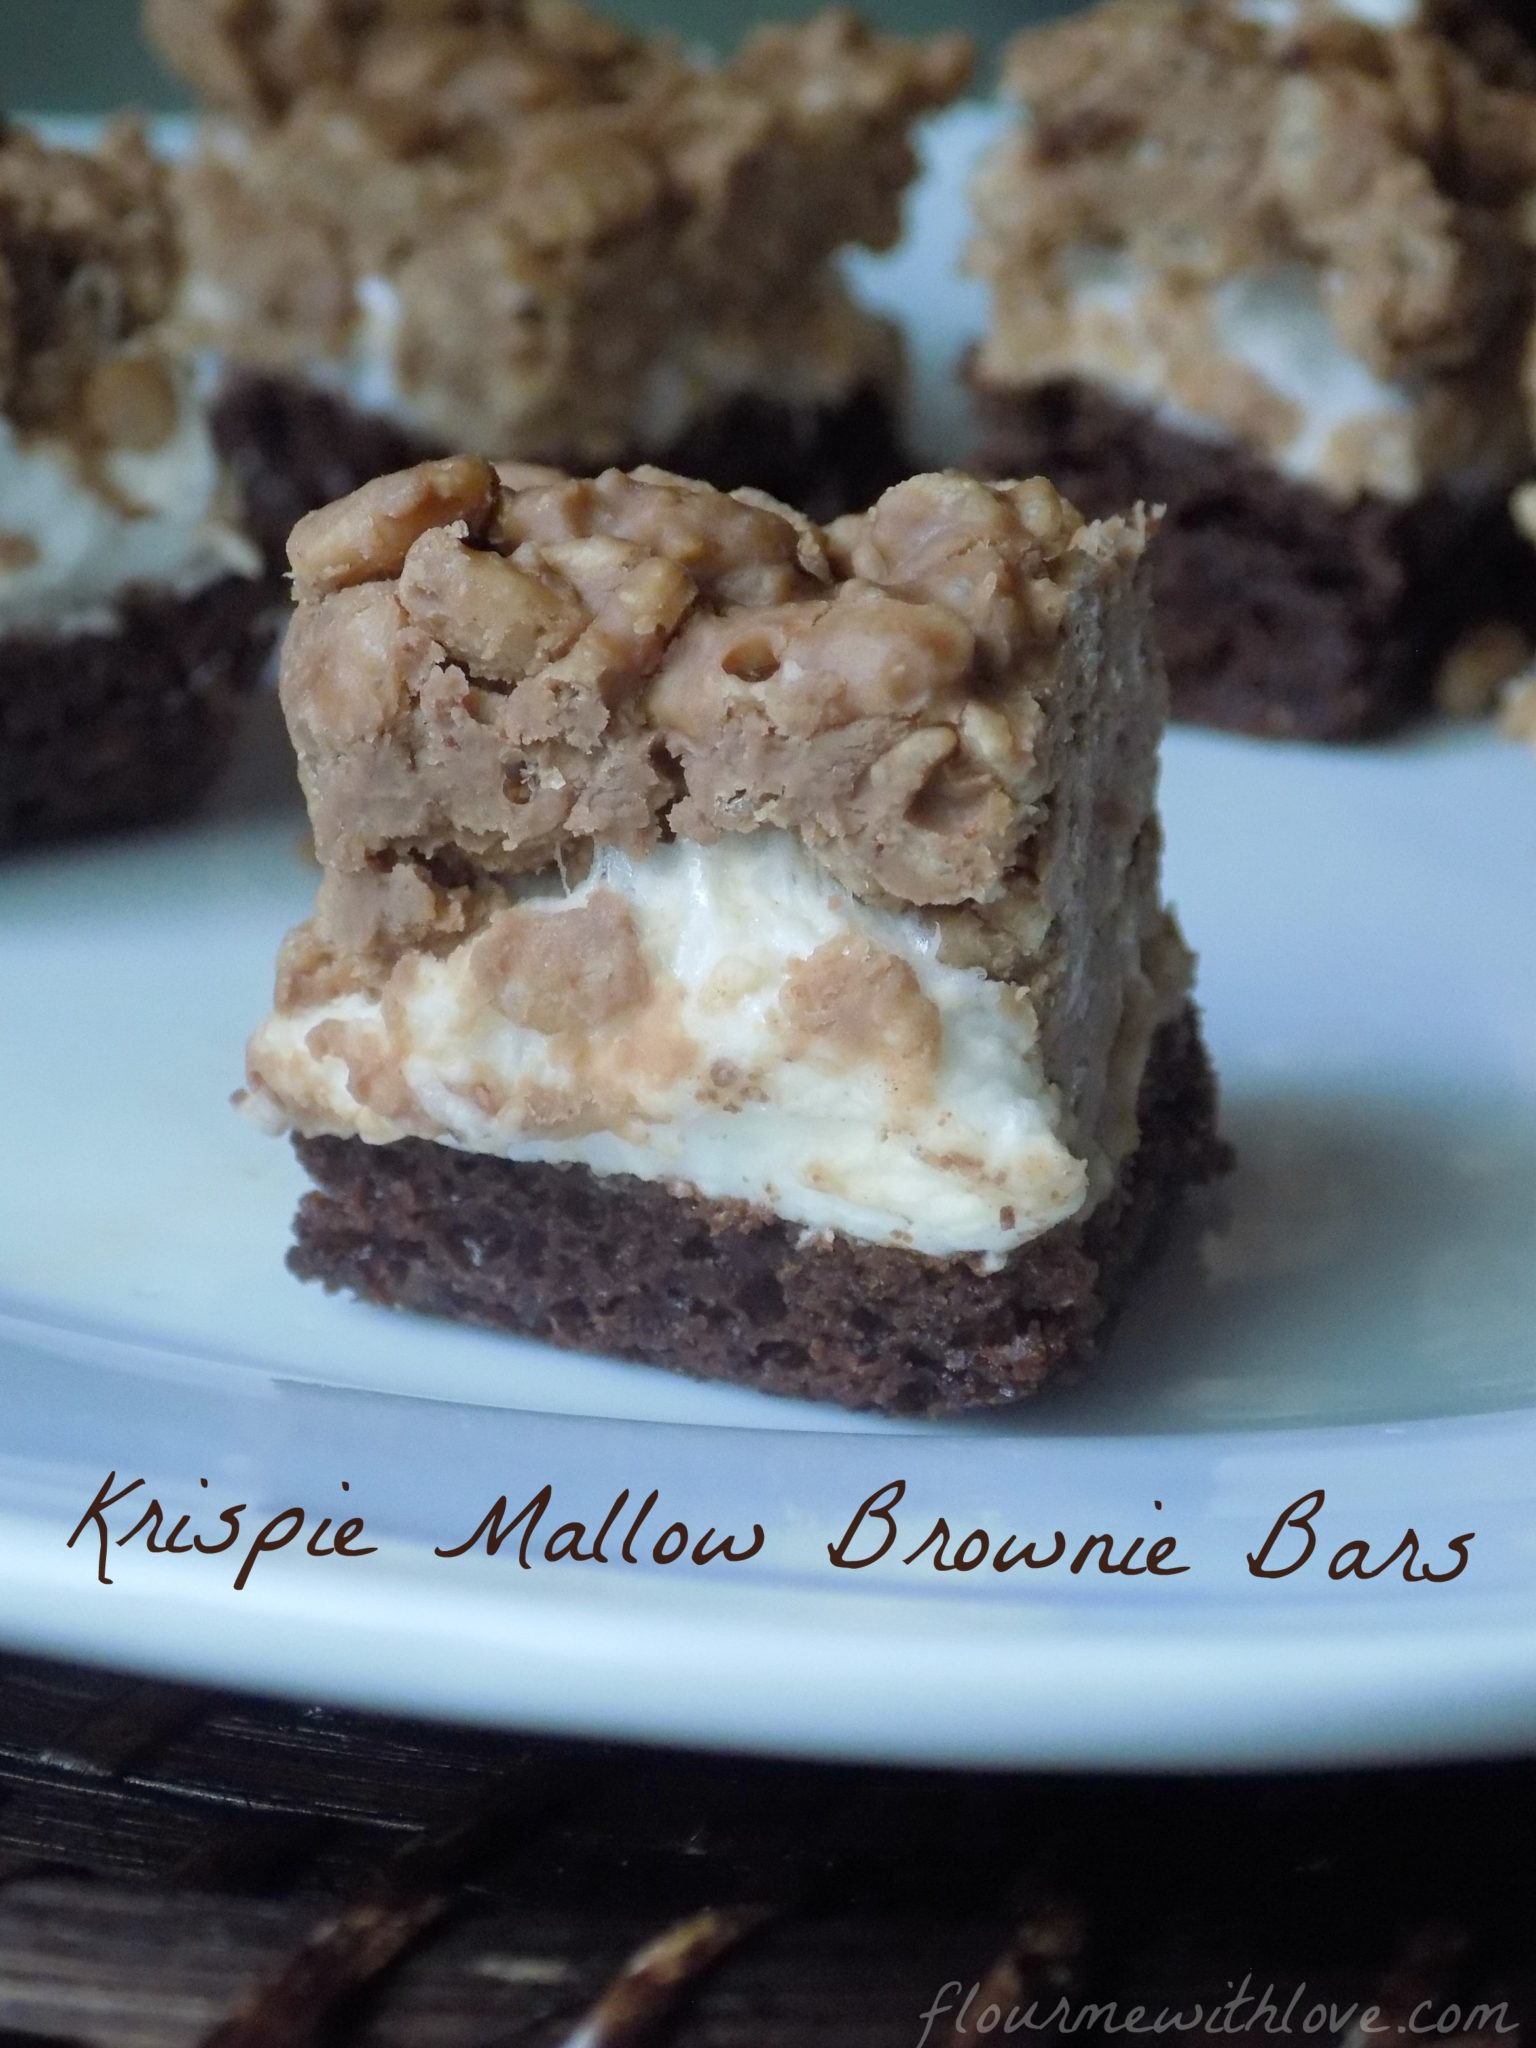 Layers of peanut butter krispie cereal, creamy marshmallows and chewy rich brownies make the perfect bar!